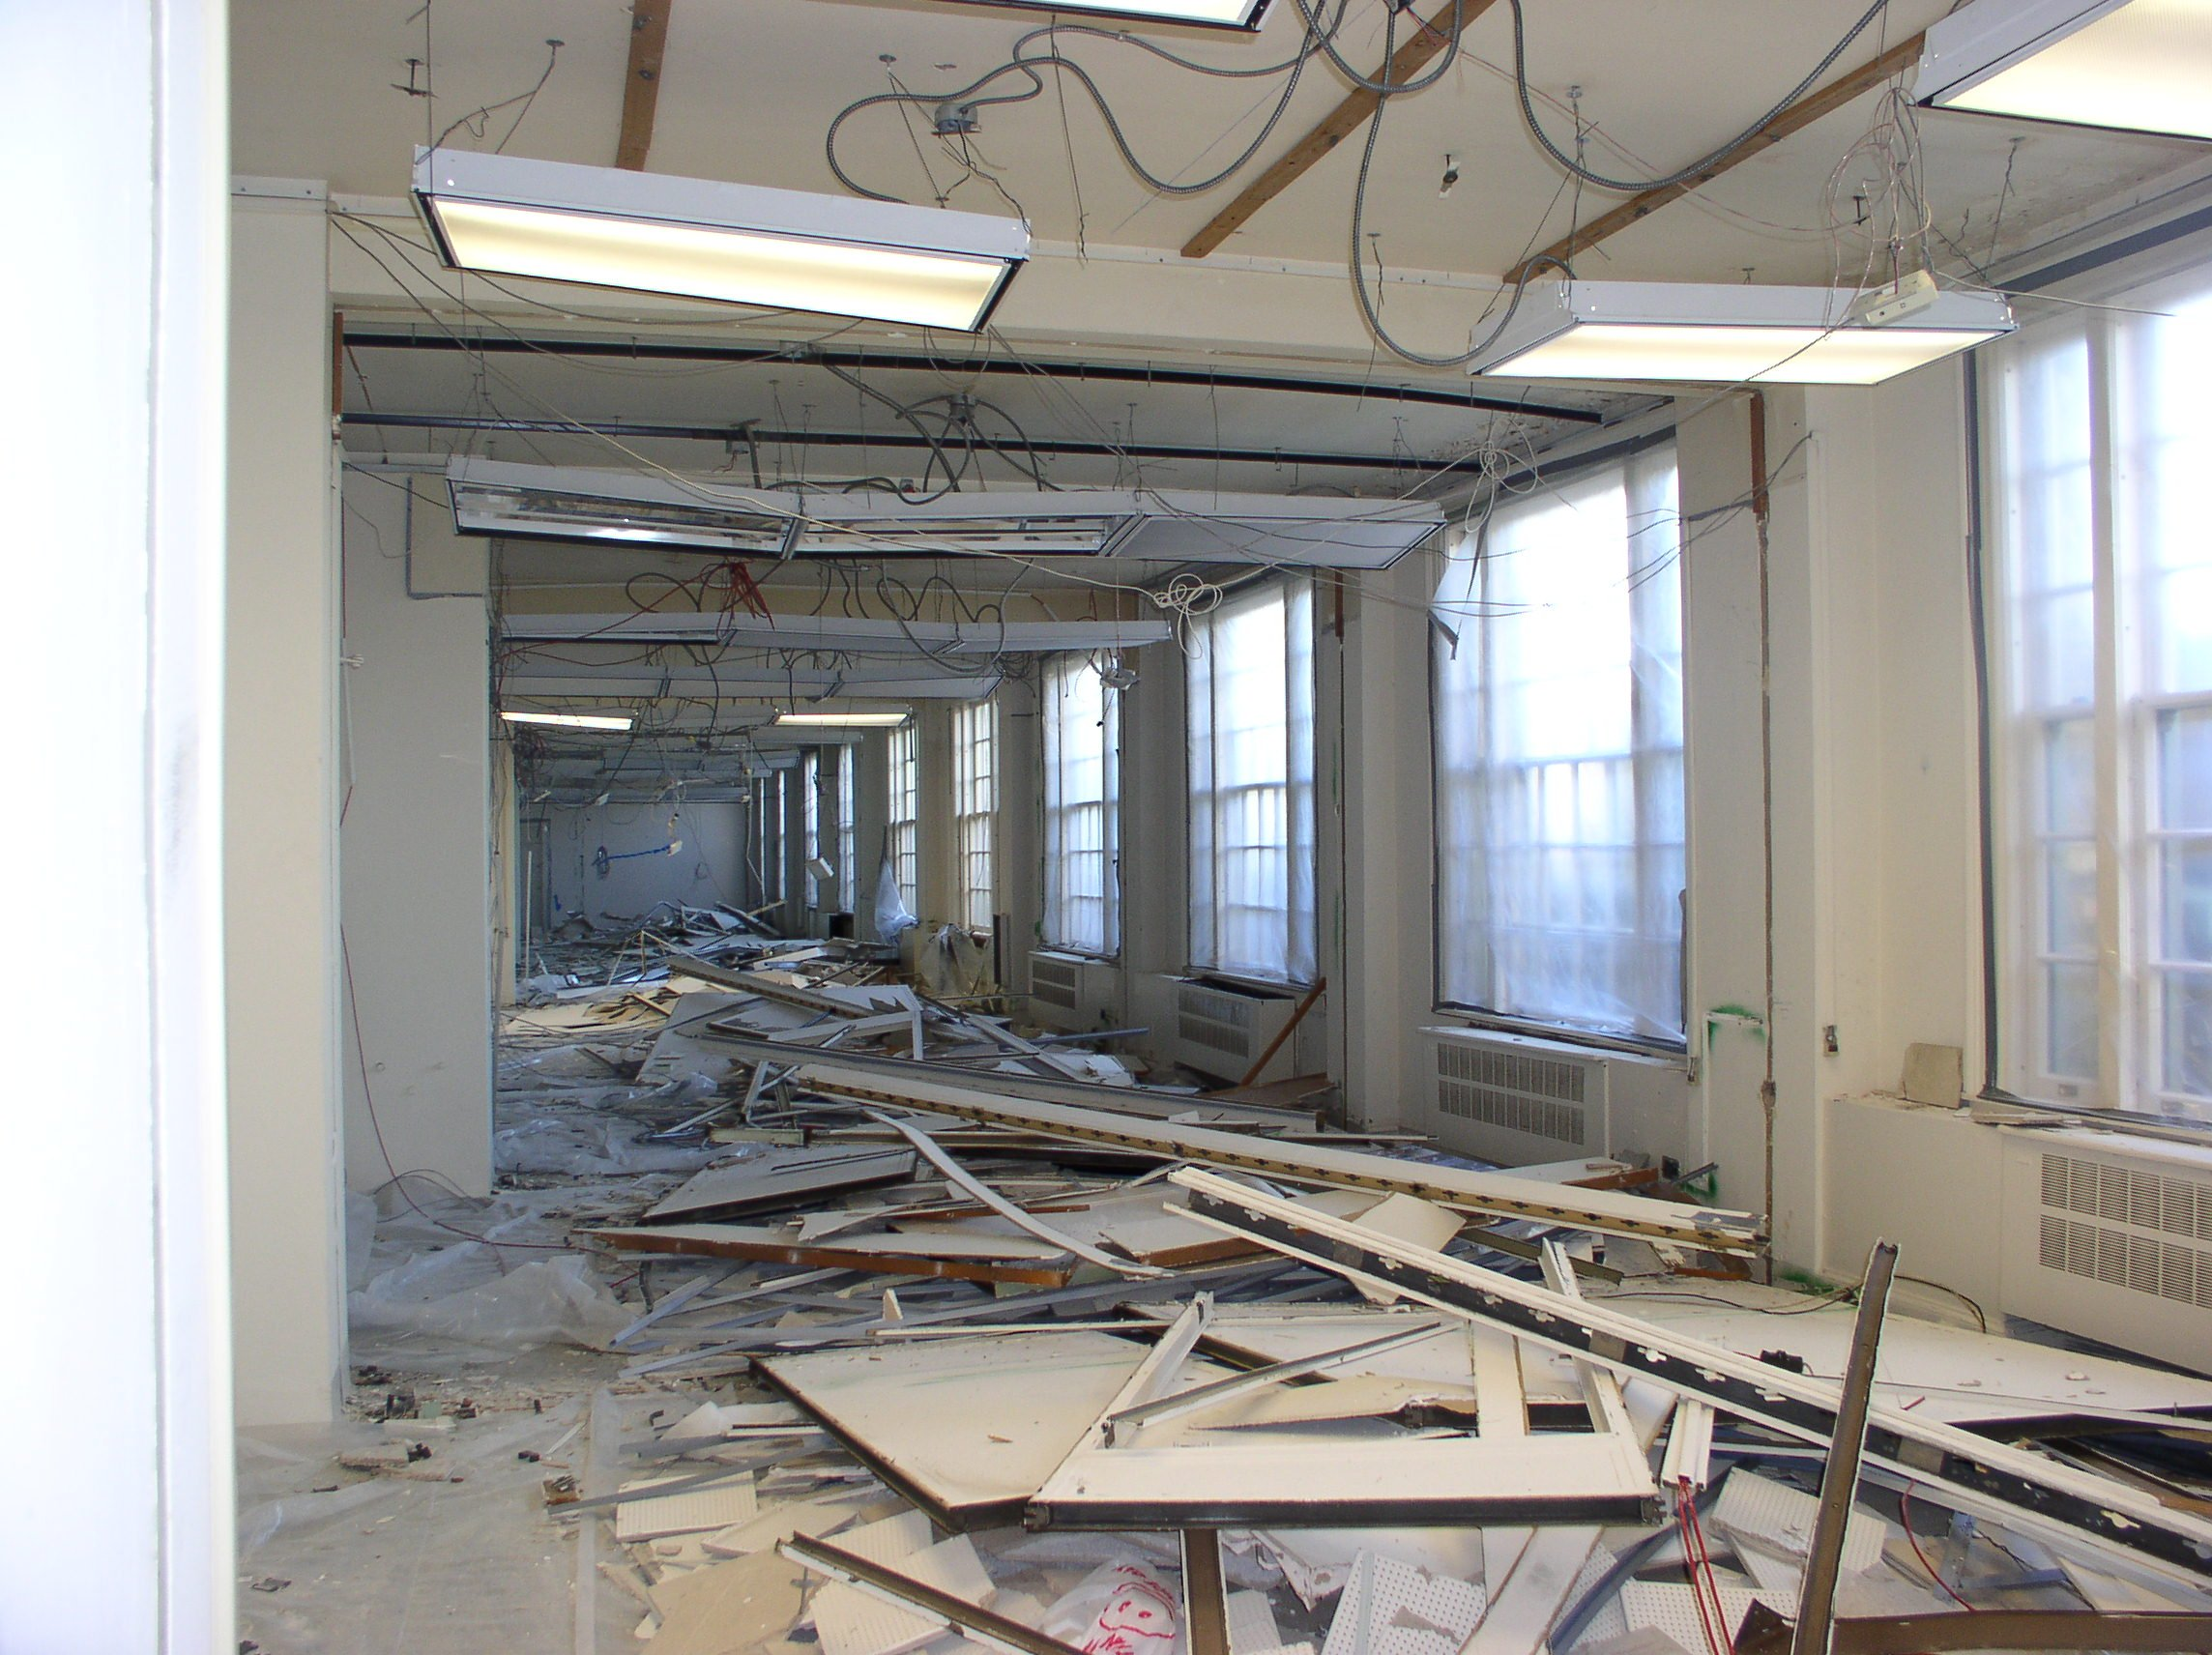 Privacy Policy >> USDA South Building Wing 4 Renovation Photos